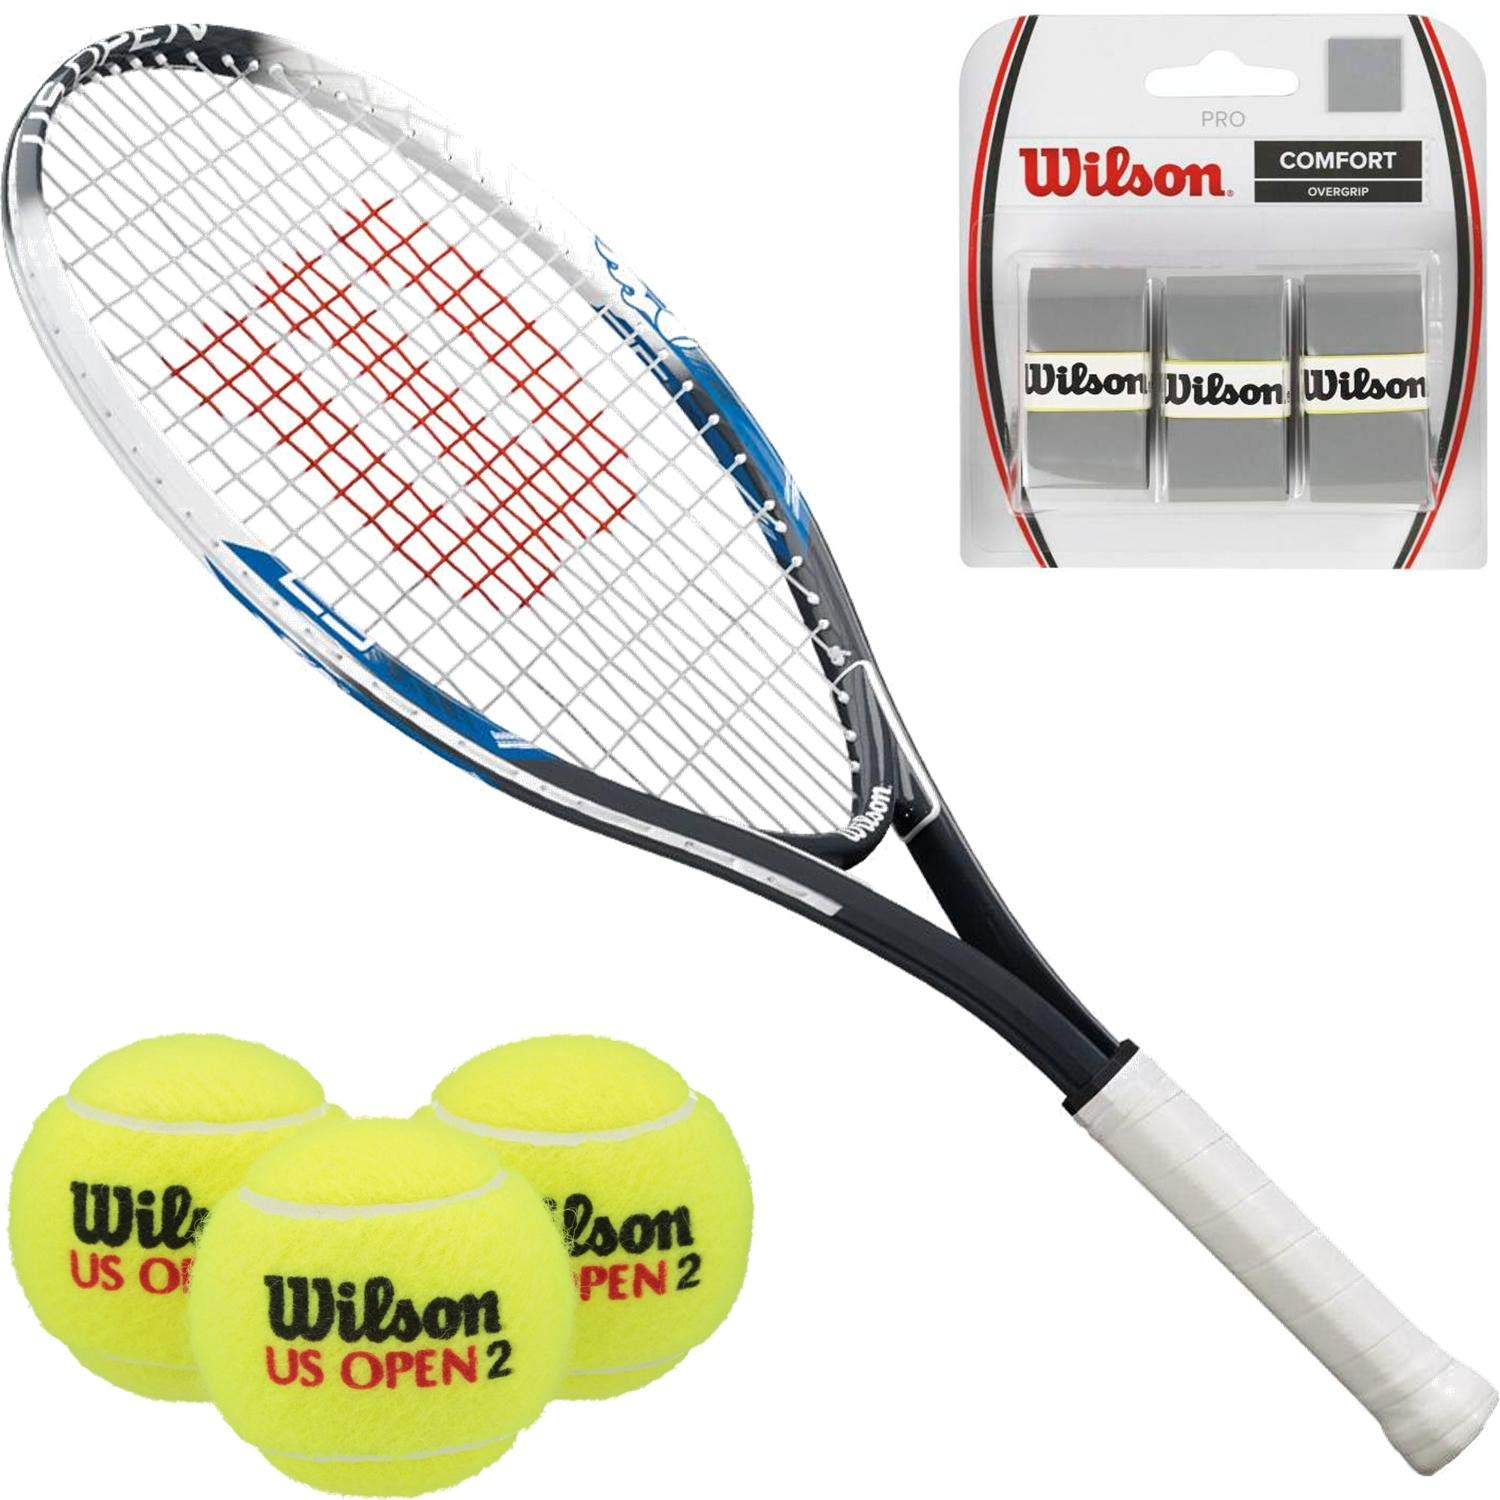 Wilson U.S. Open 25 Inch Junior Tennis Racquet Starter Kit or Set Bundled with a Can of U.S. Open All-Court Balls and a 3-Pack of Black Overgrips